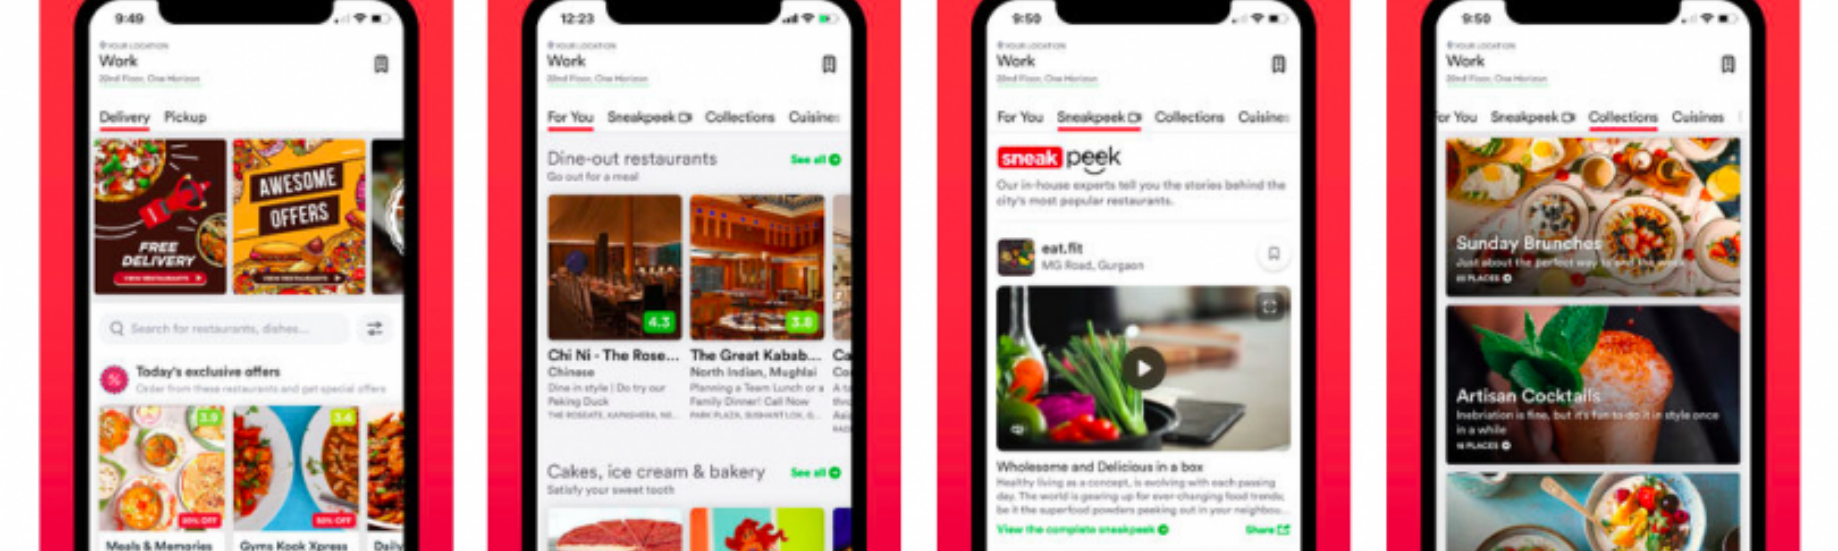 Top 7 apps and sites to send your restaurant bookings sky high